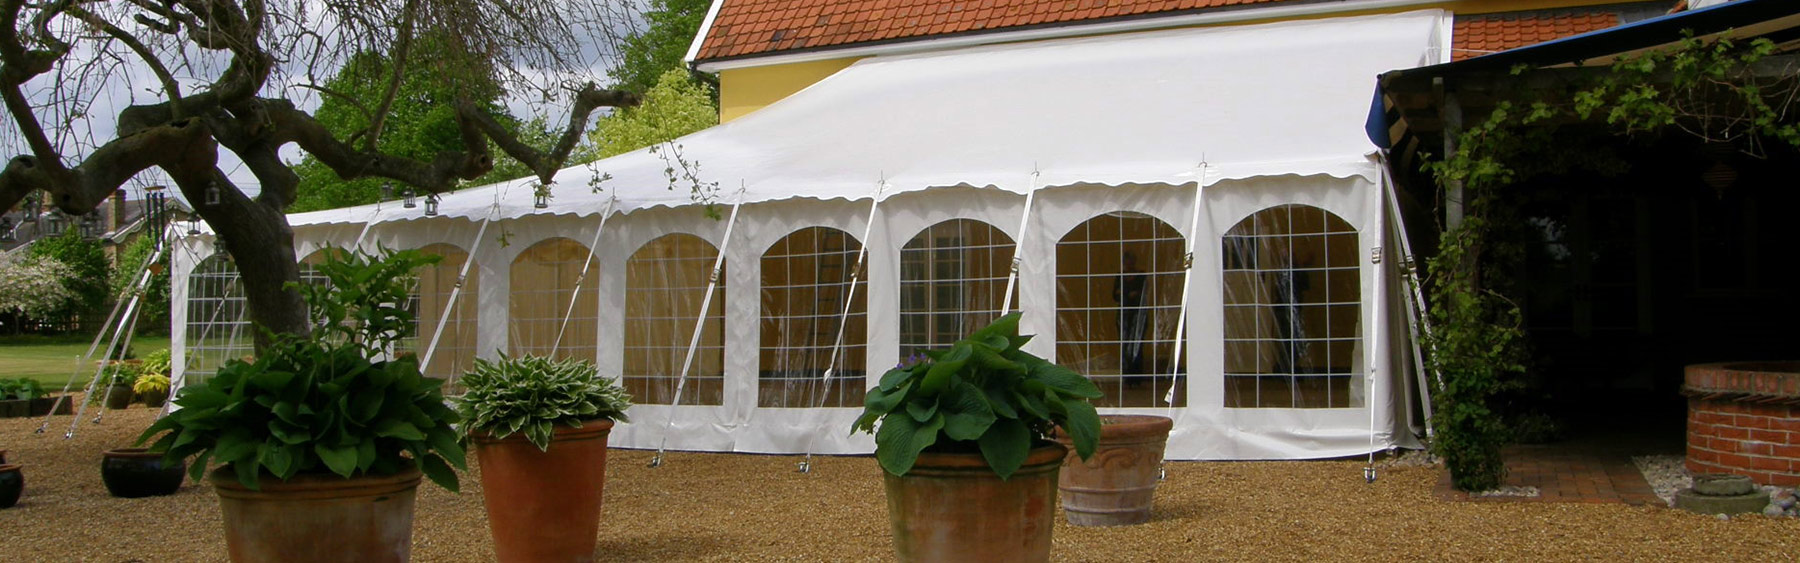 Marquees For Pubs